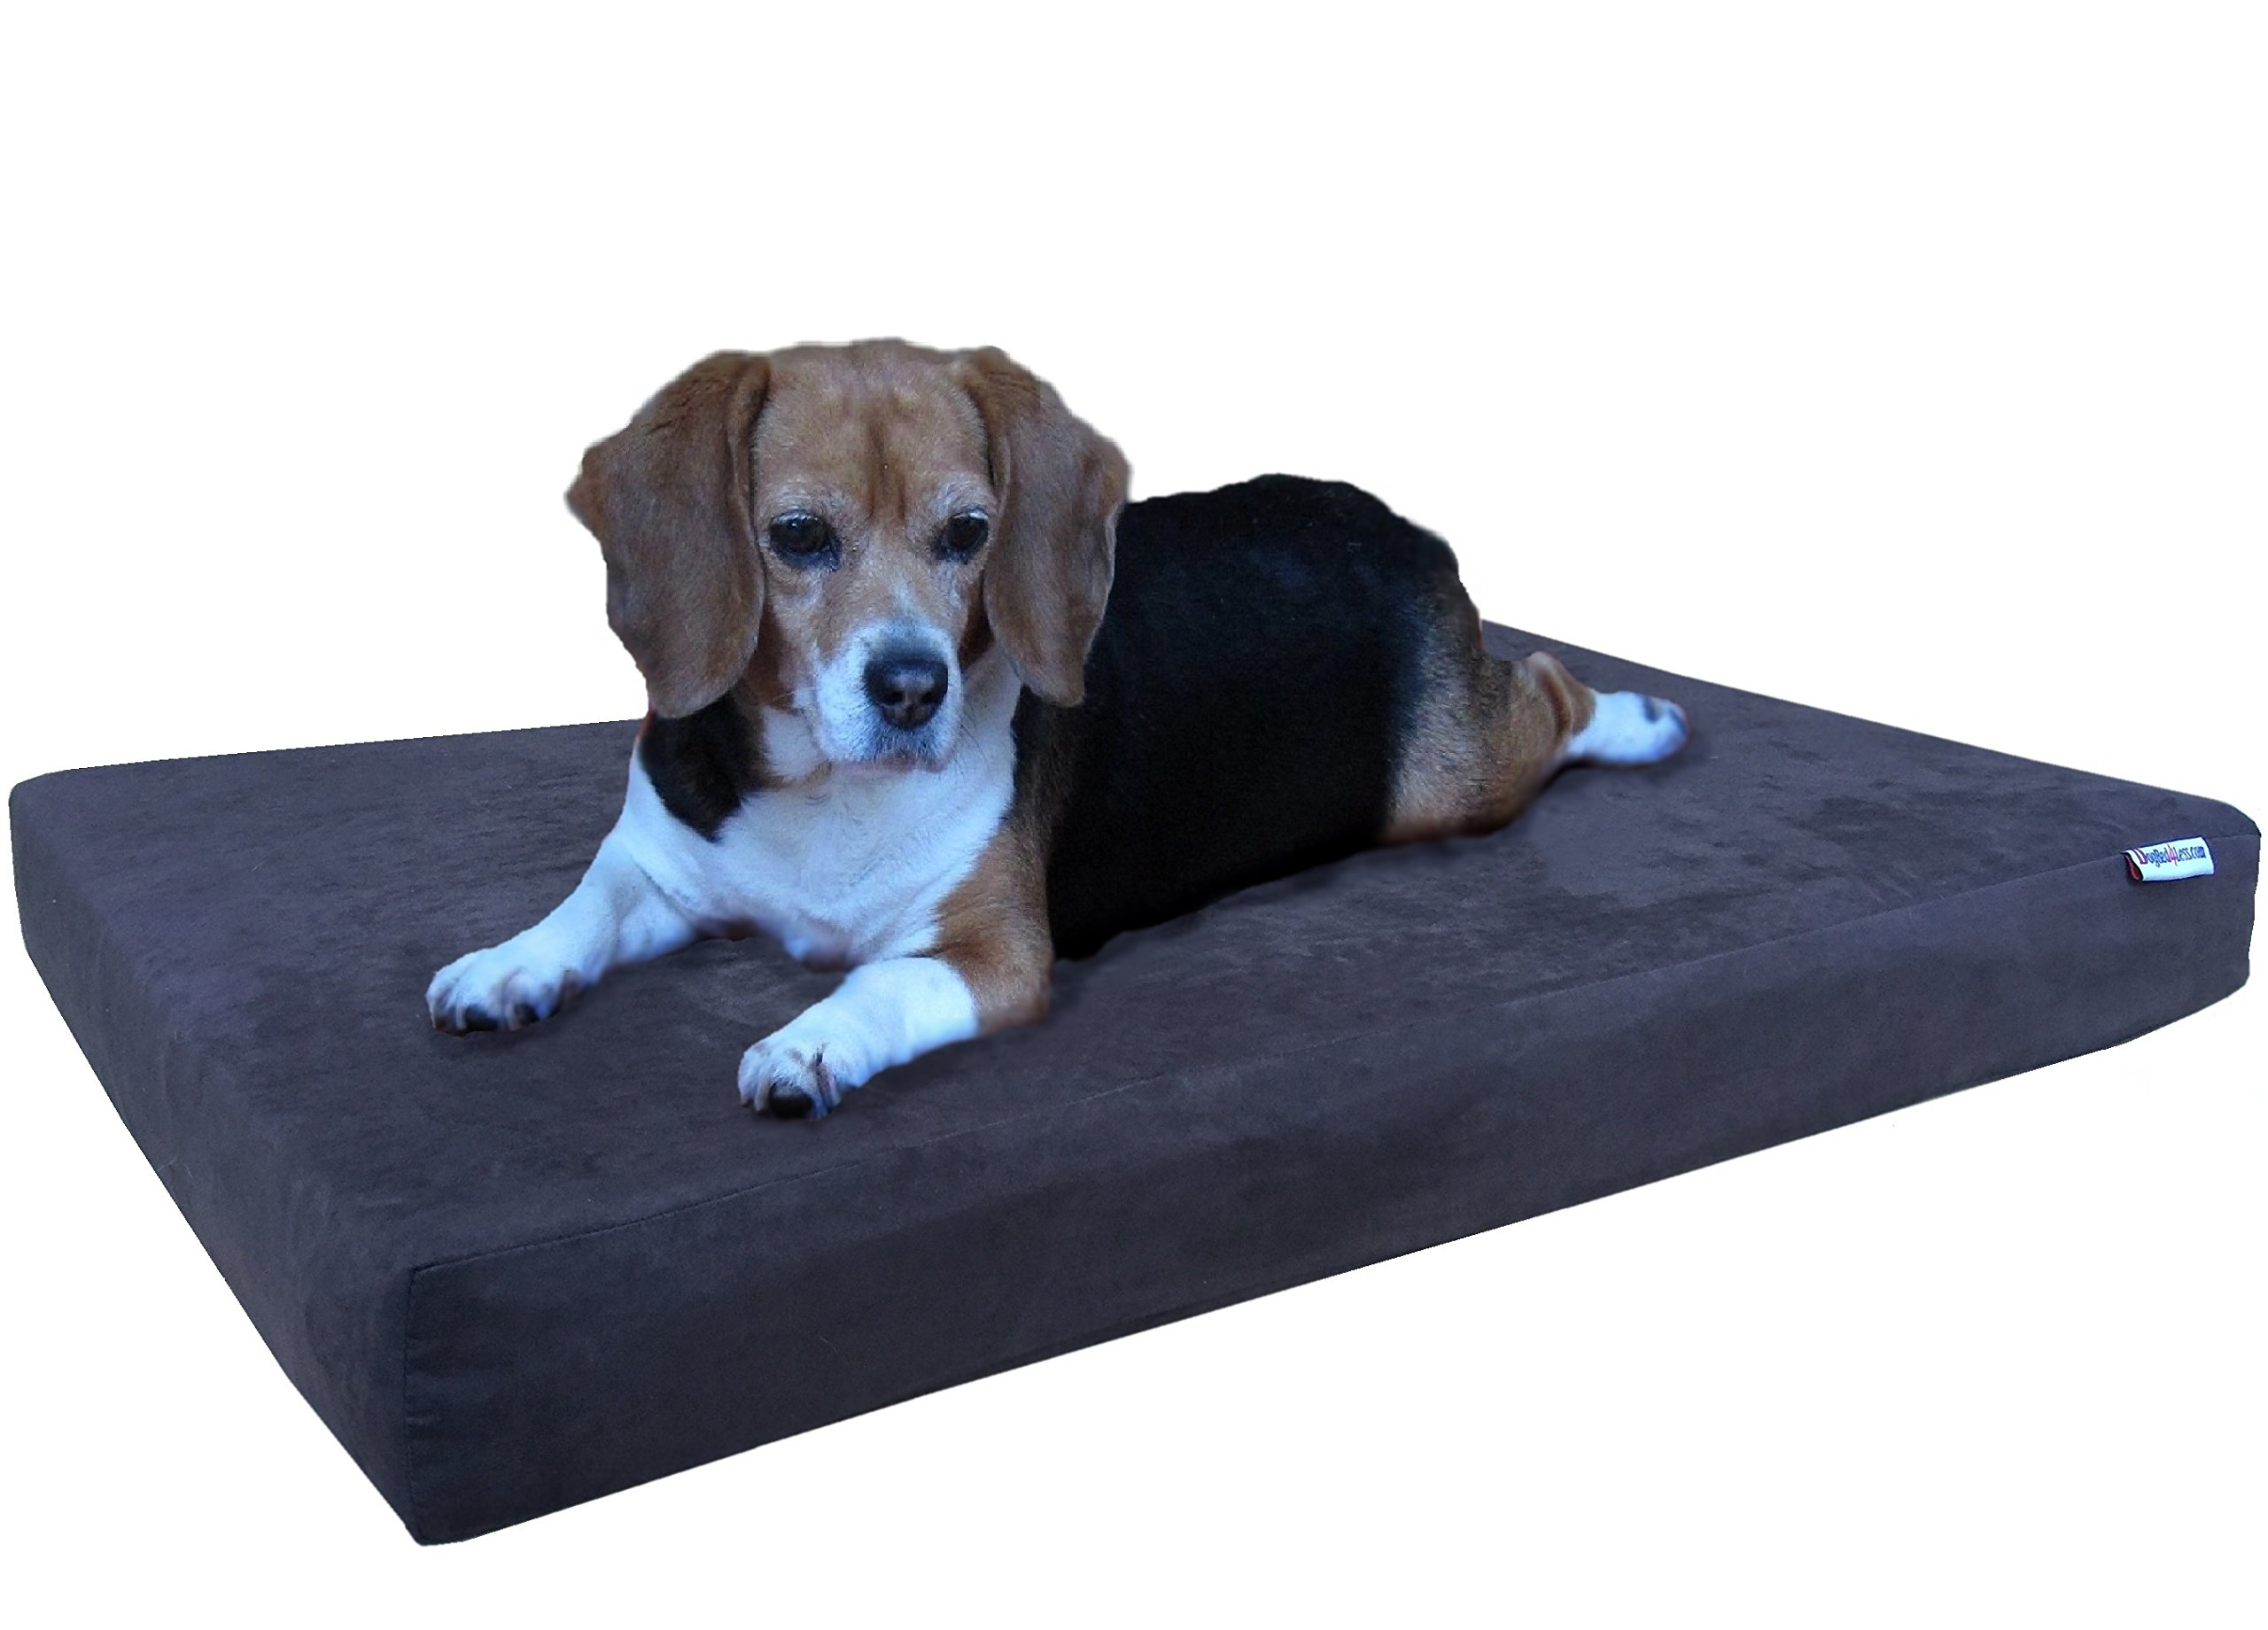 Dogbed4less Orthopedic Dog Bed with Memory Foam for Medium Large Pet, Waterproof Liner, Washable Micro Suede Espresso Cover by Dogbed4less